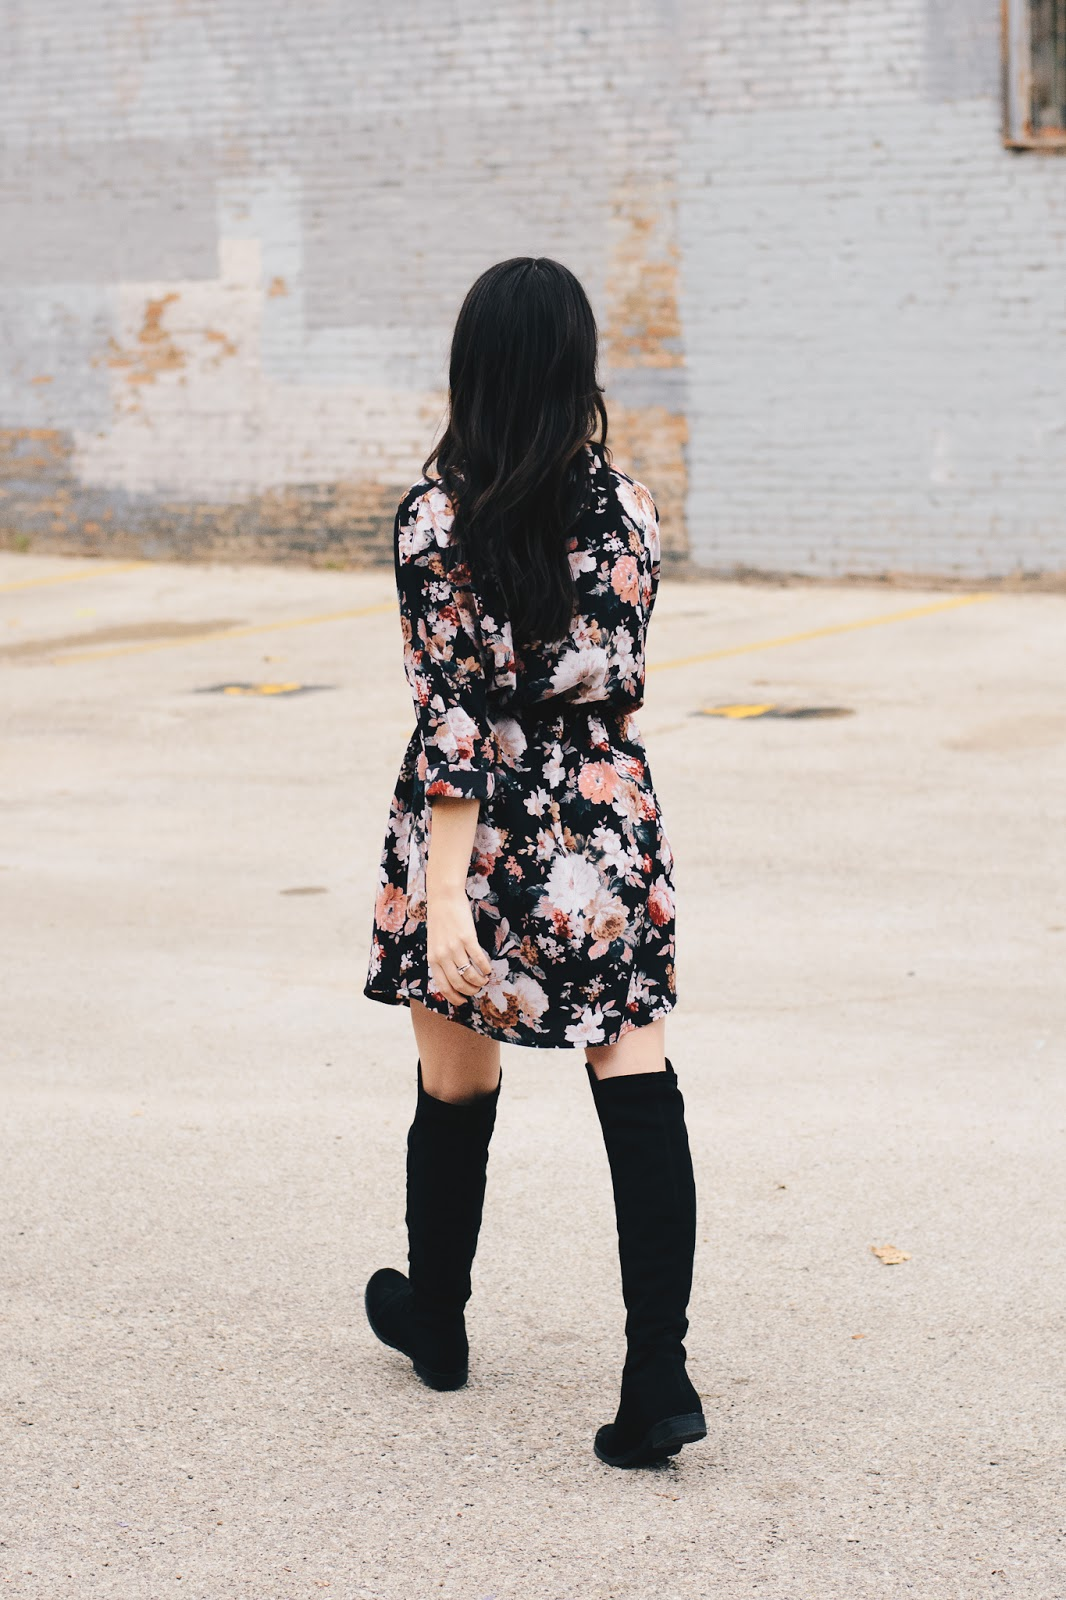 Wearing Floral Dress and OTK Boots